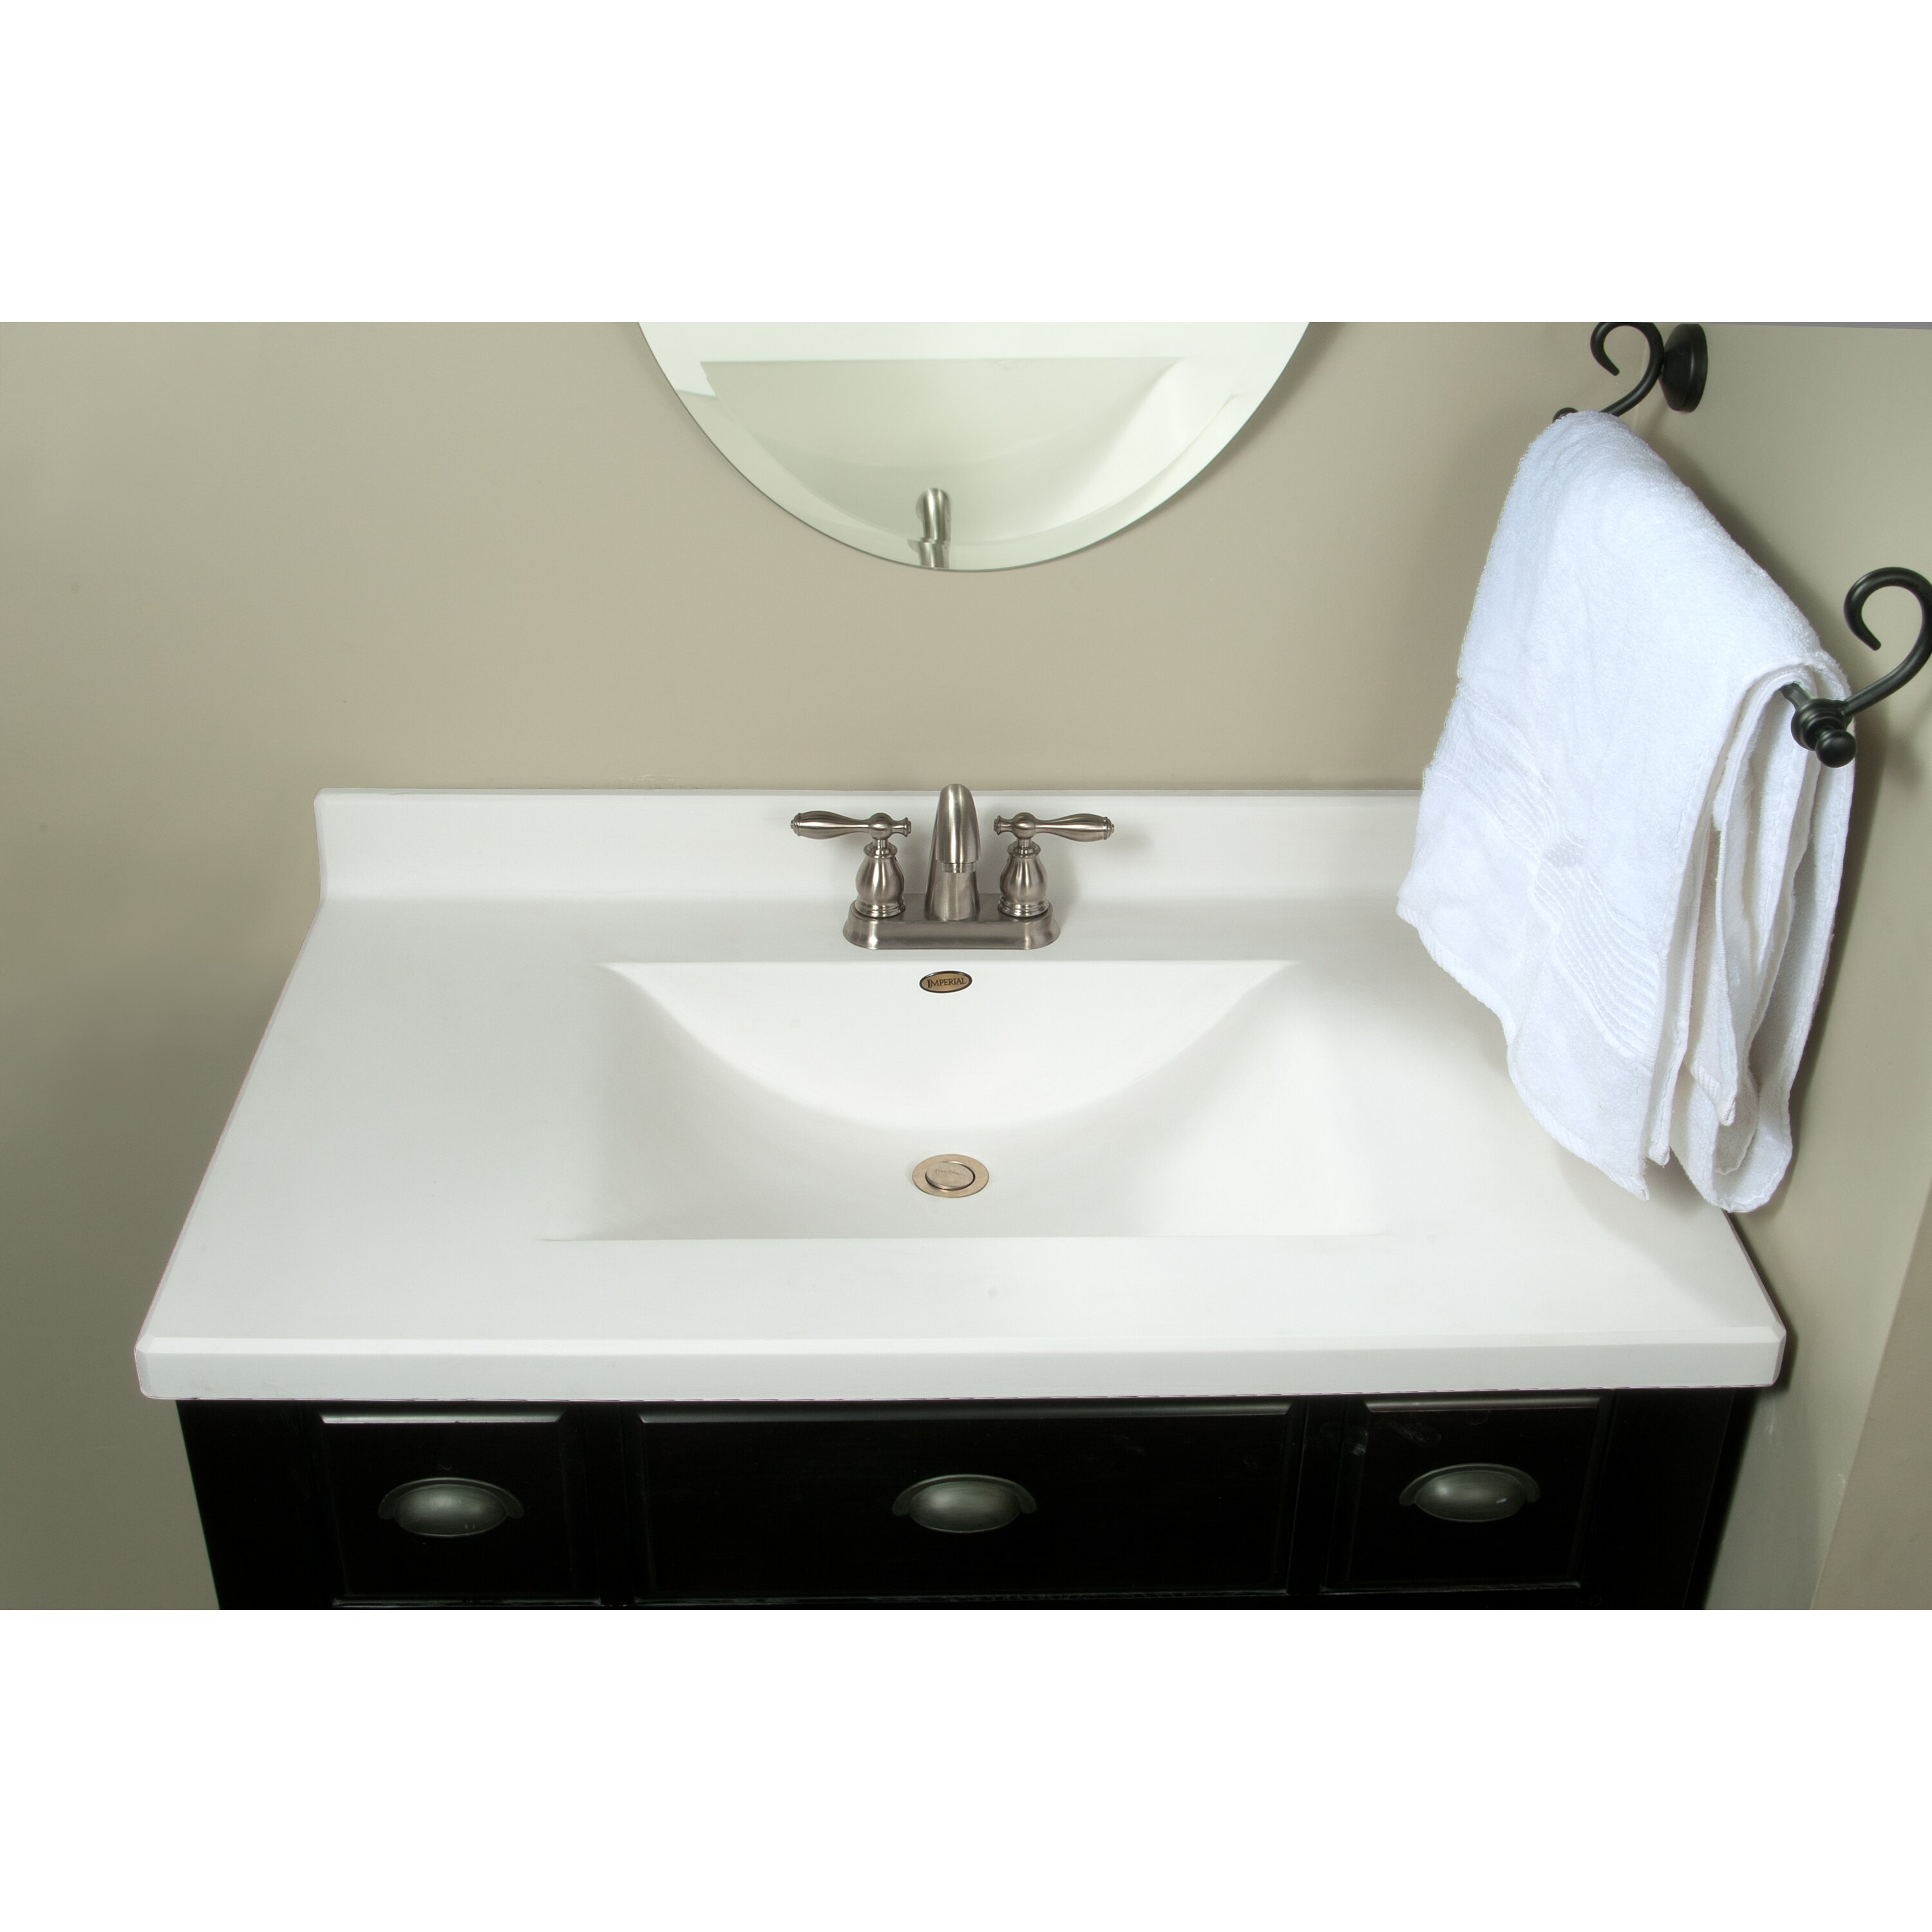 Imperial centre wave bowl 37 single bathroom vanity top for Bathroom vanity tops for sale